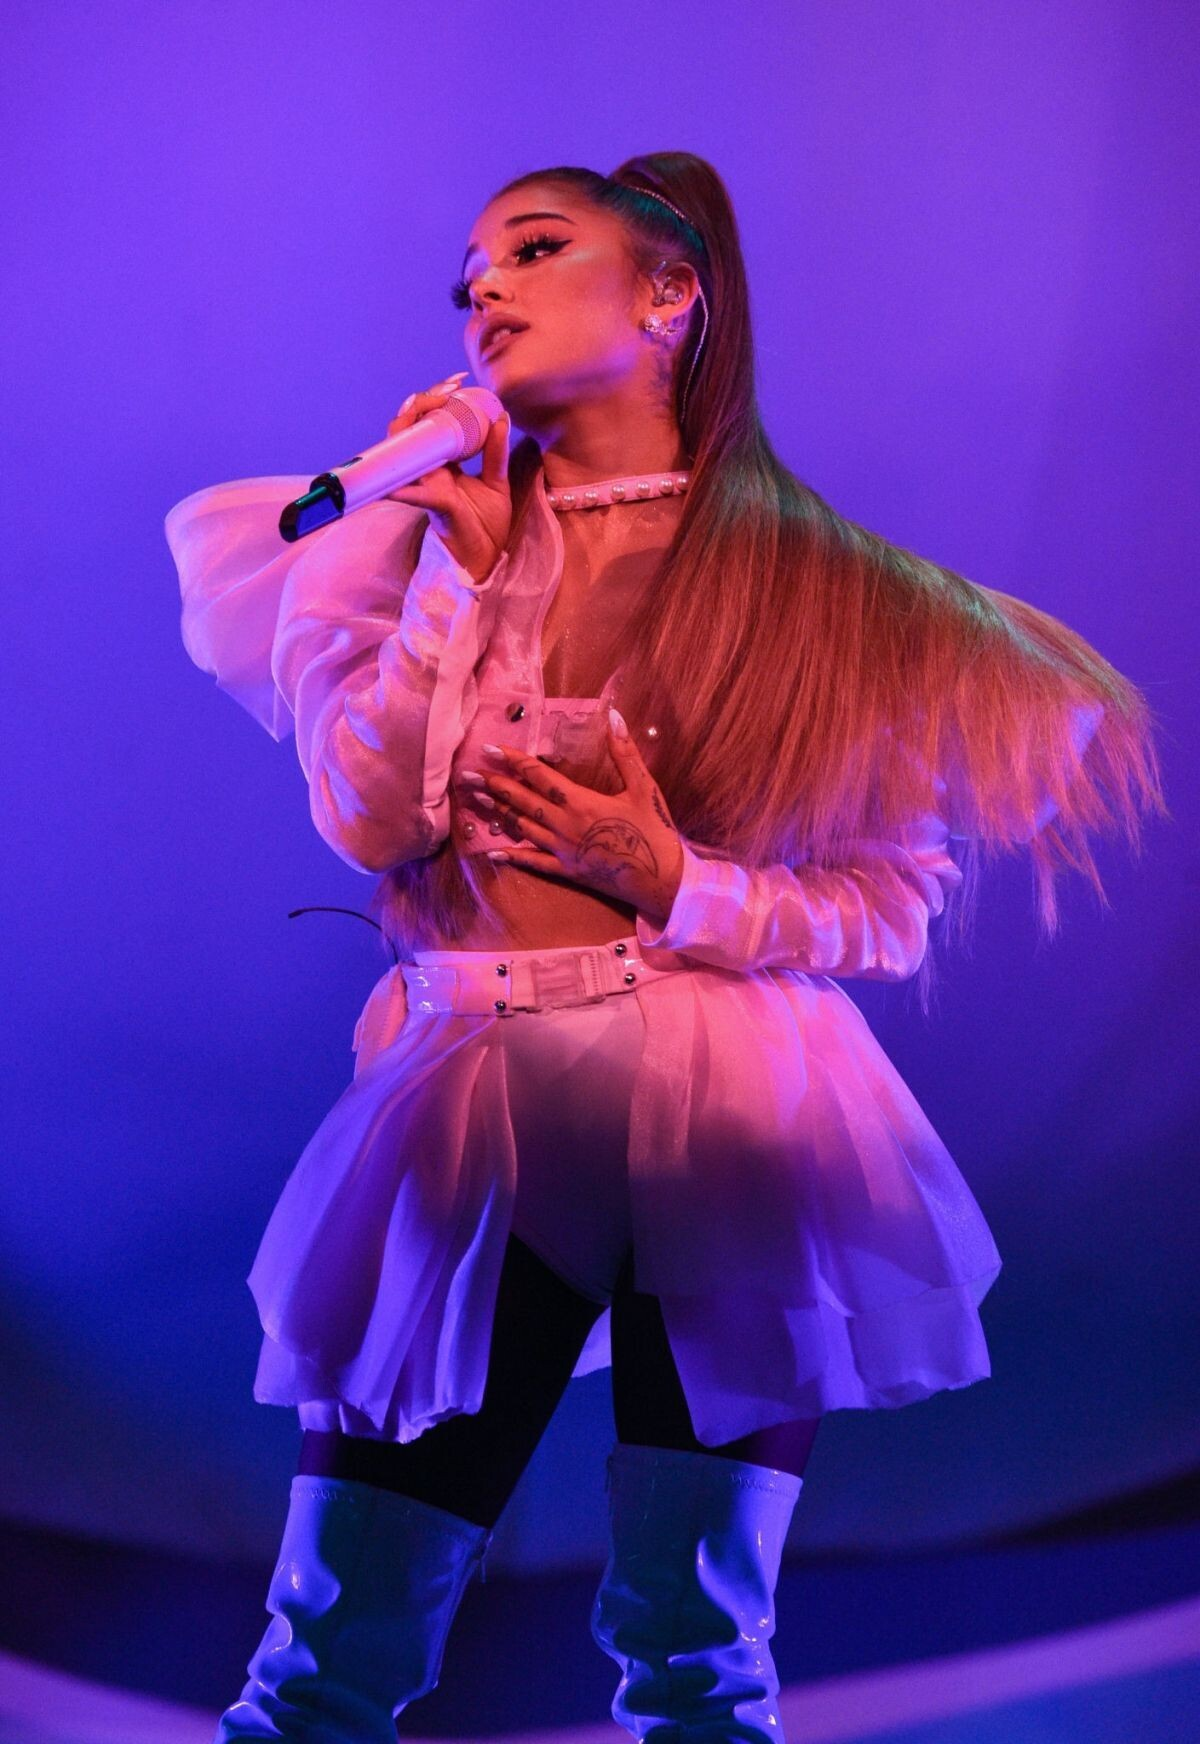 Ariana Grande Sexy Performance Photos, Short Skirt